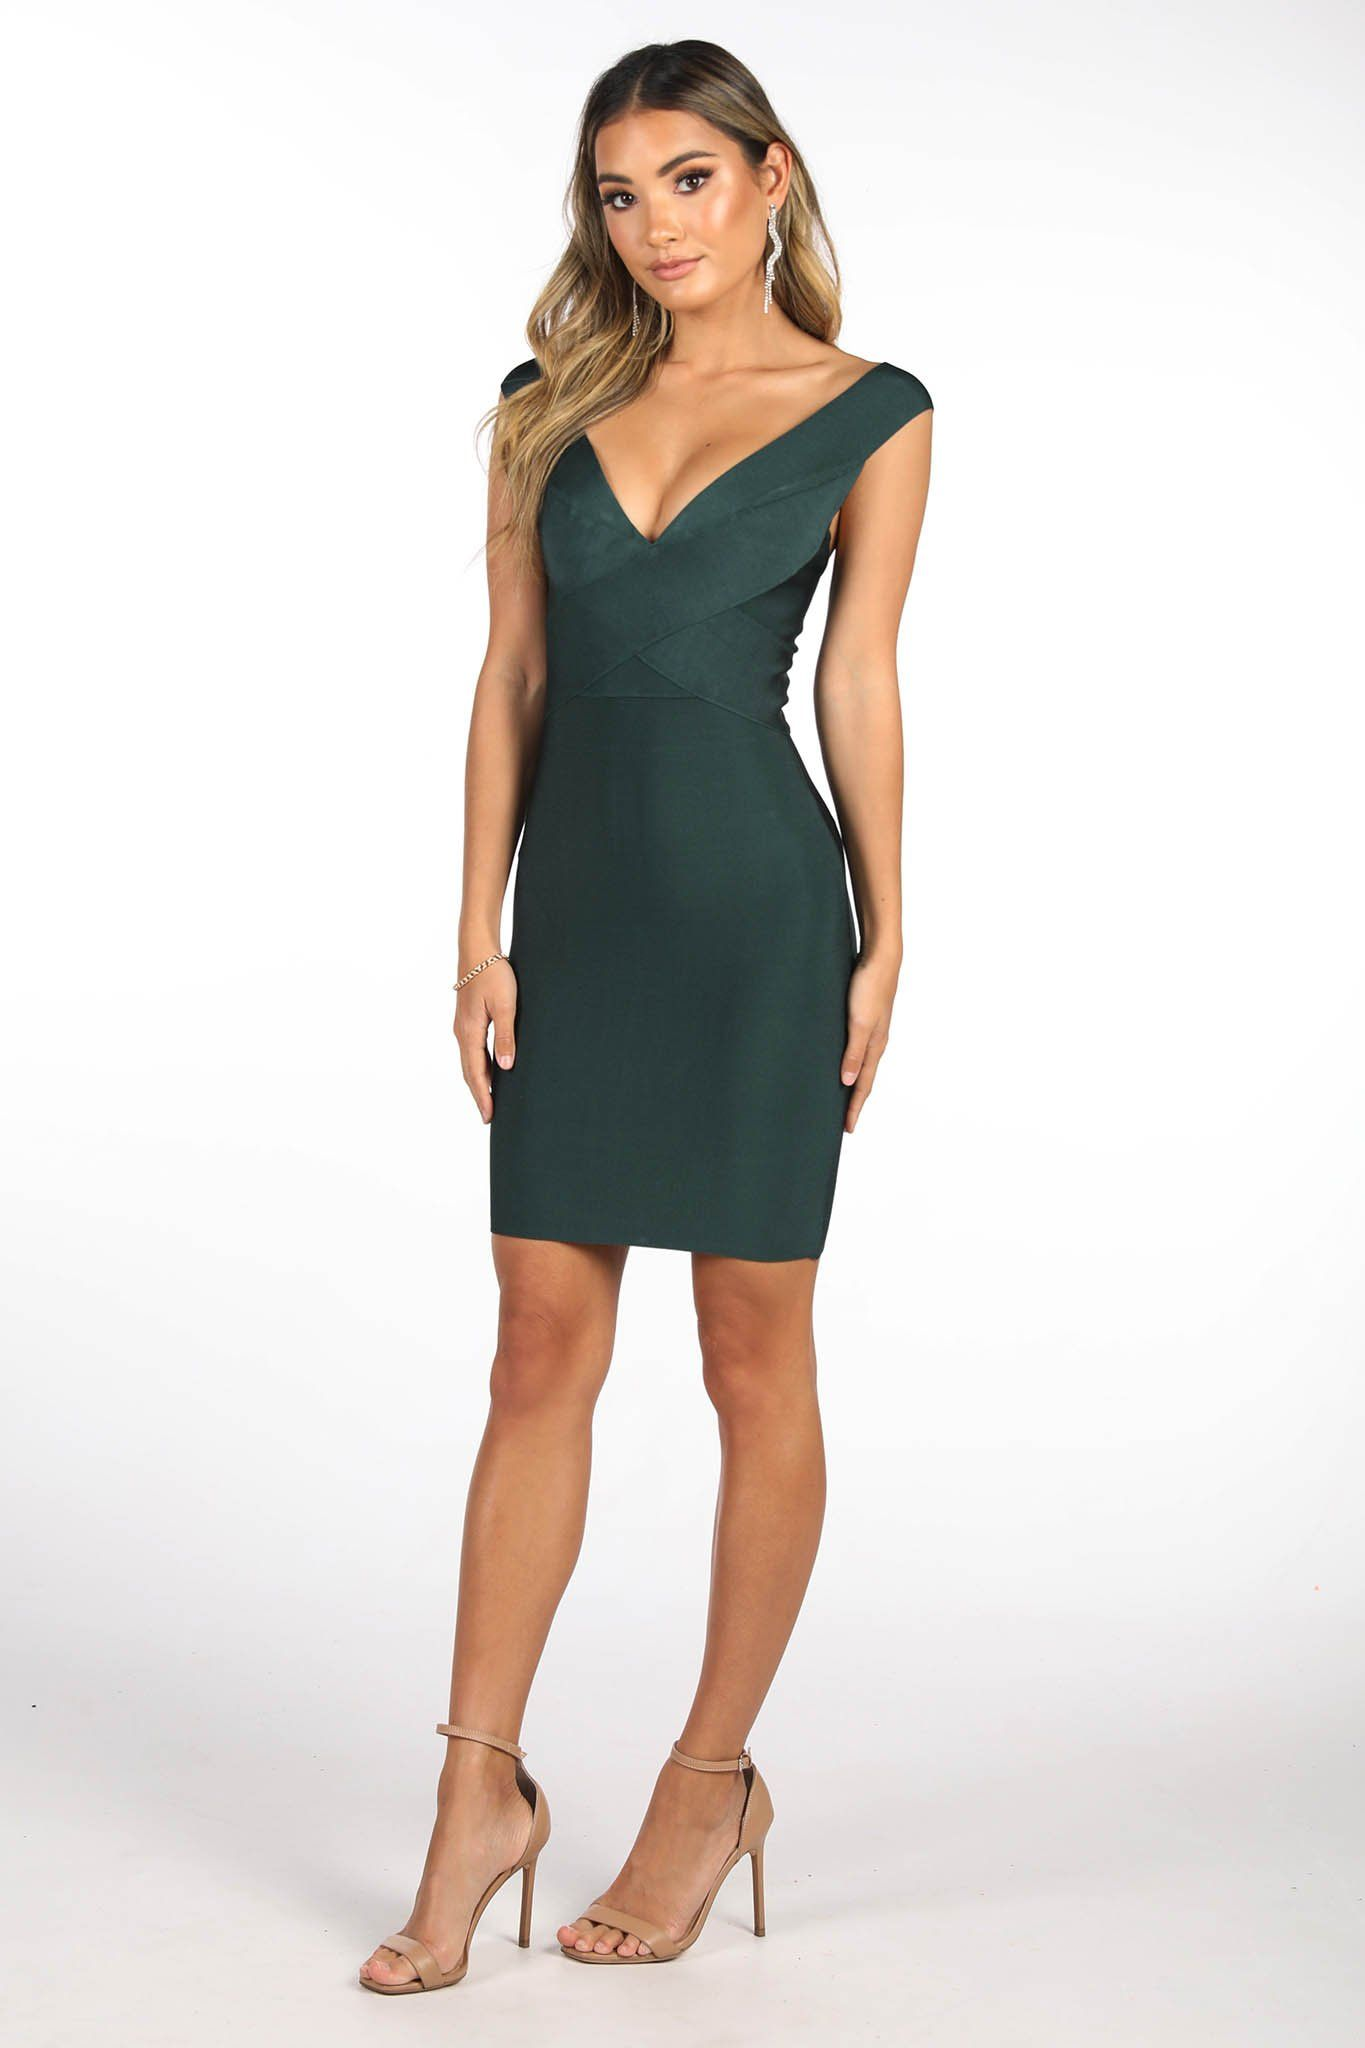 Deep Green Mini Bandage Dress with Deep V Neckline, Thick Shoulder Straps and Body-hugging fit